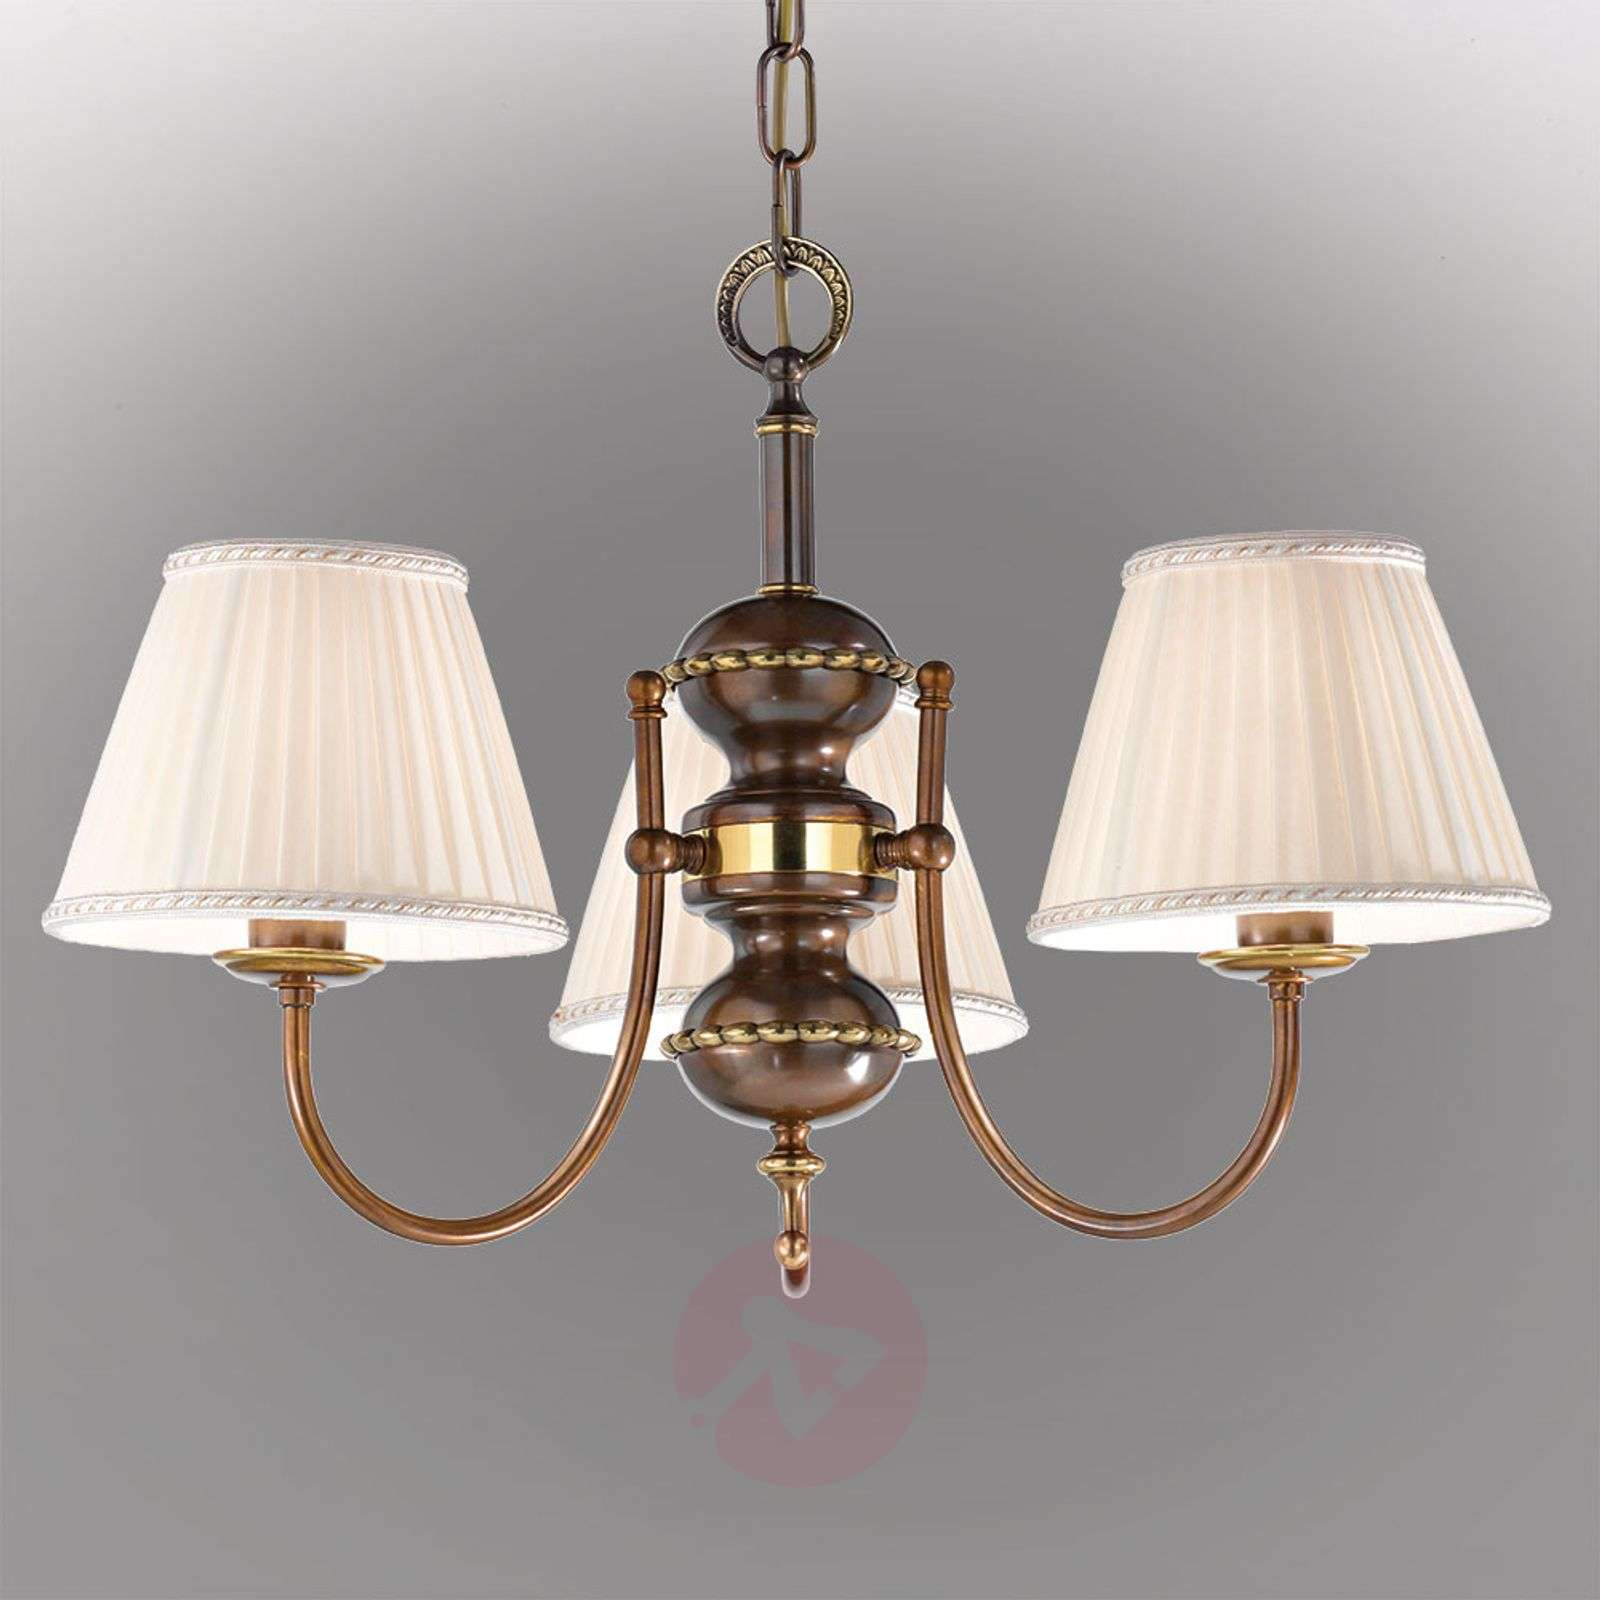 suspension classic antique 3 lampes. Black Bedroom Furniture Sets. Home Design Ideas